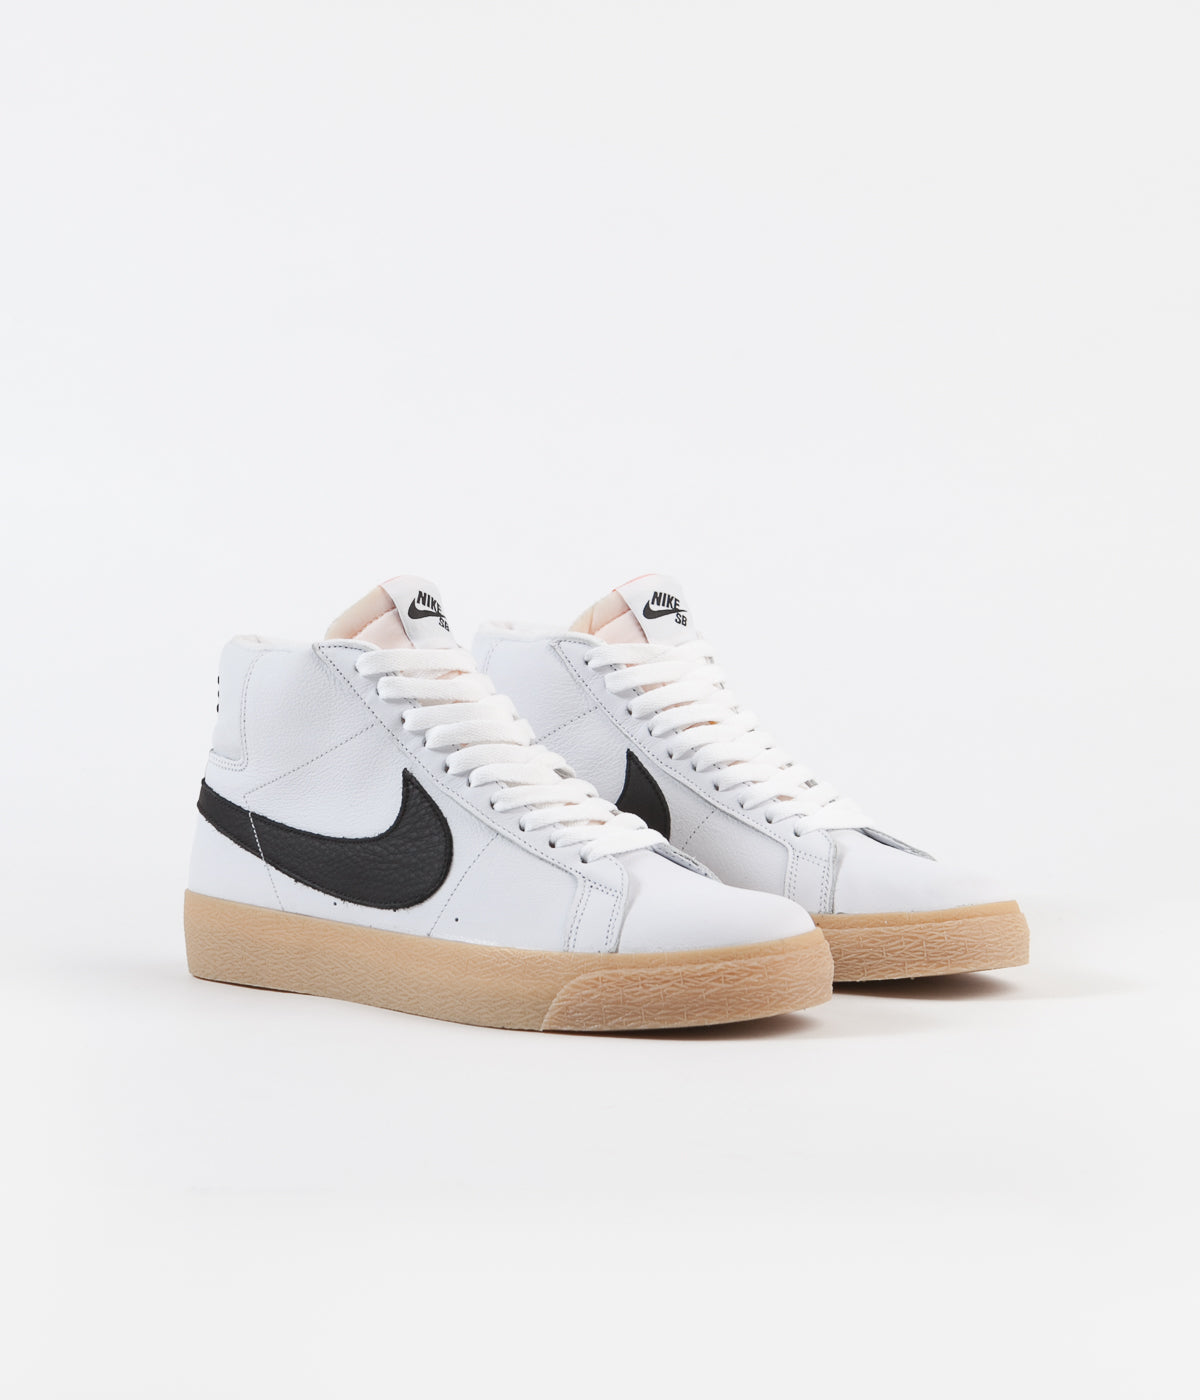 Nike SB Orange Label Blazer Mid Shoes - White / Black - Safety Orange